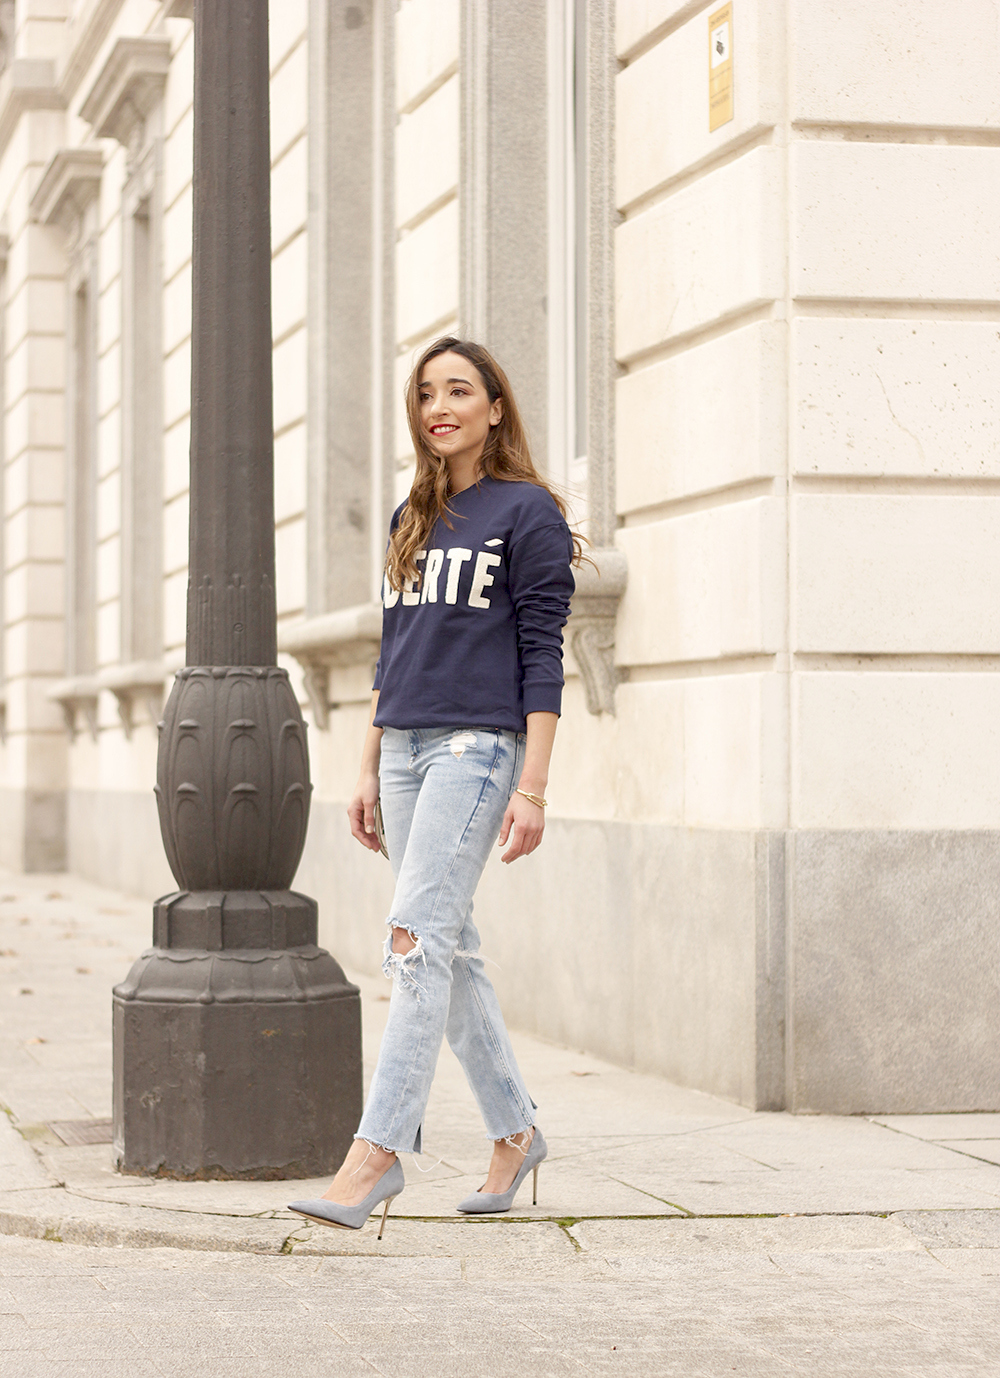 Sweatshirt ripped jeans clavin klein white bag high heels street style outfit 20193